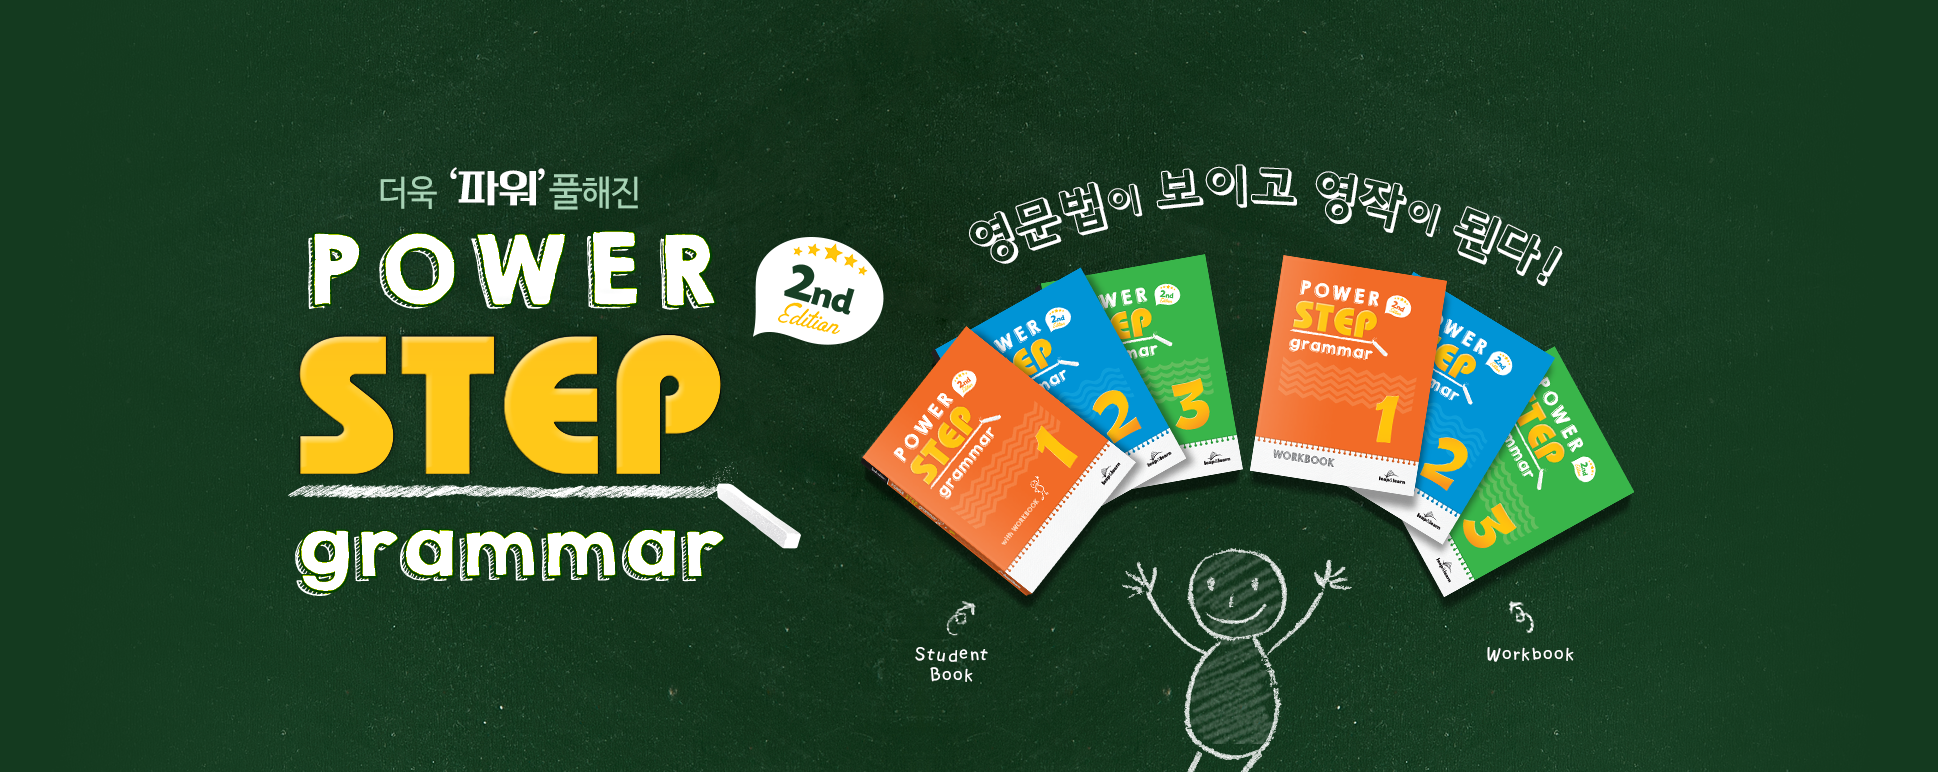 power step grammar series